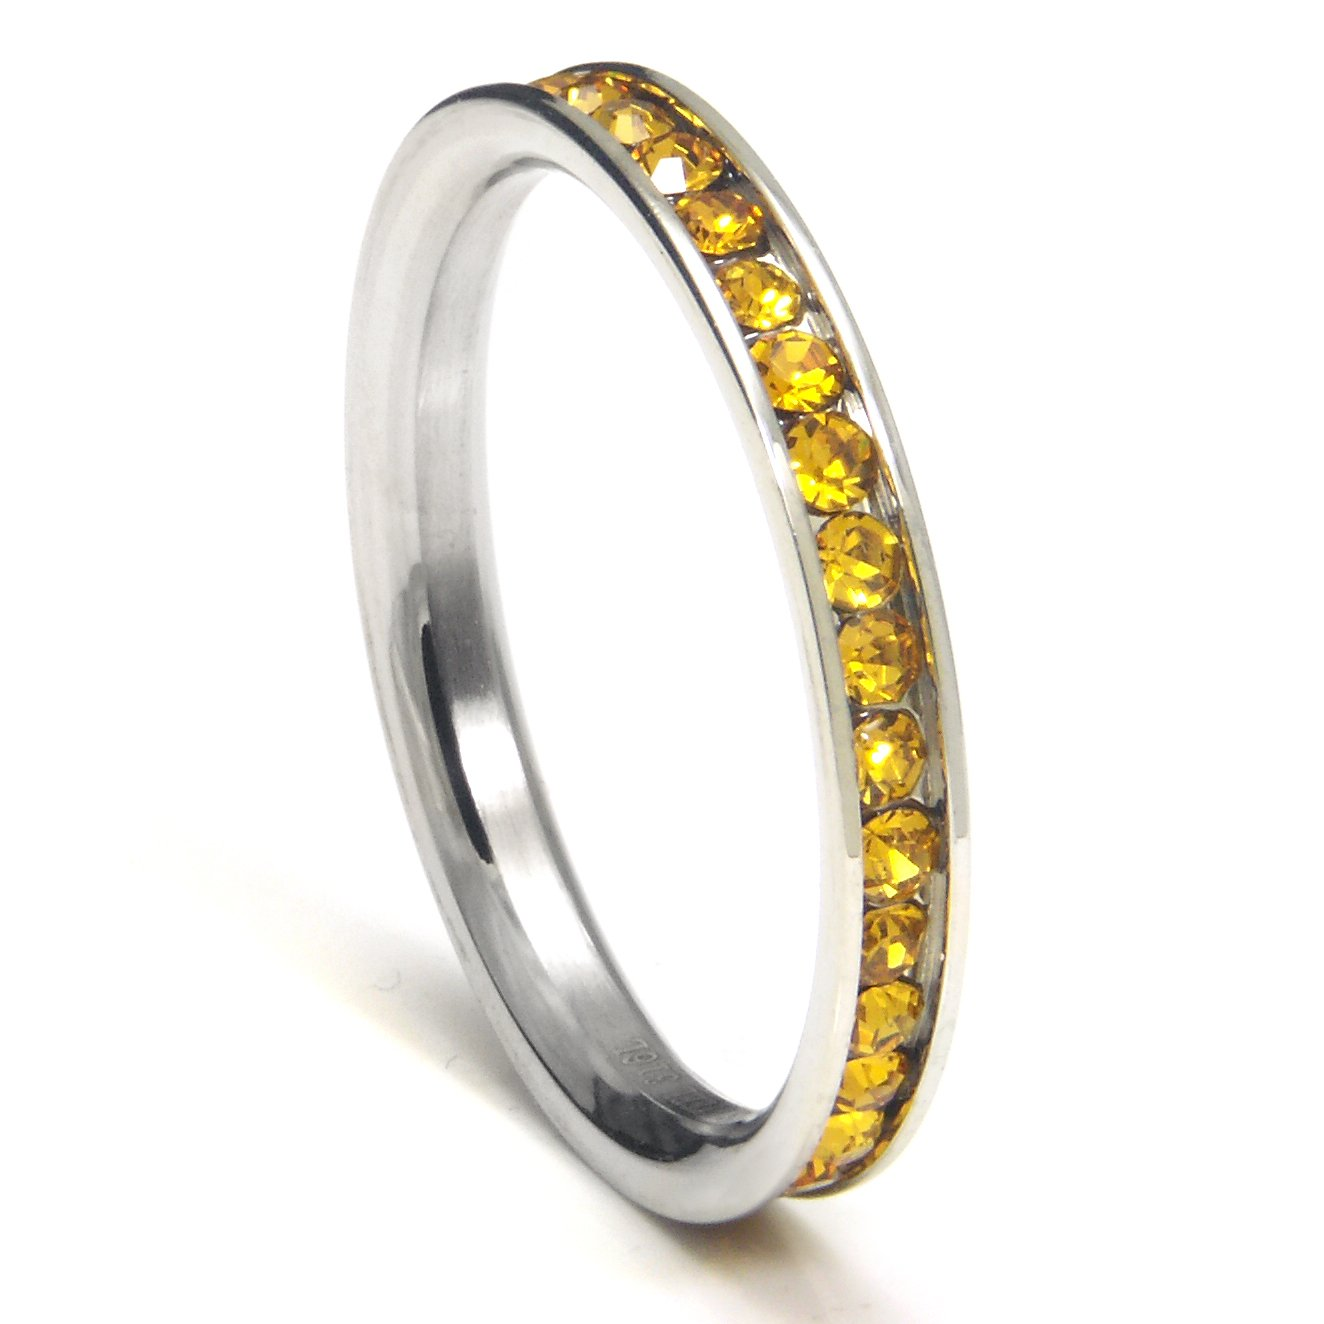 316L Stainless Steel Lemon Yellow Cubic Zirconia CZ Eternity Wedding 3MM Band Ring Sz 8